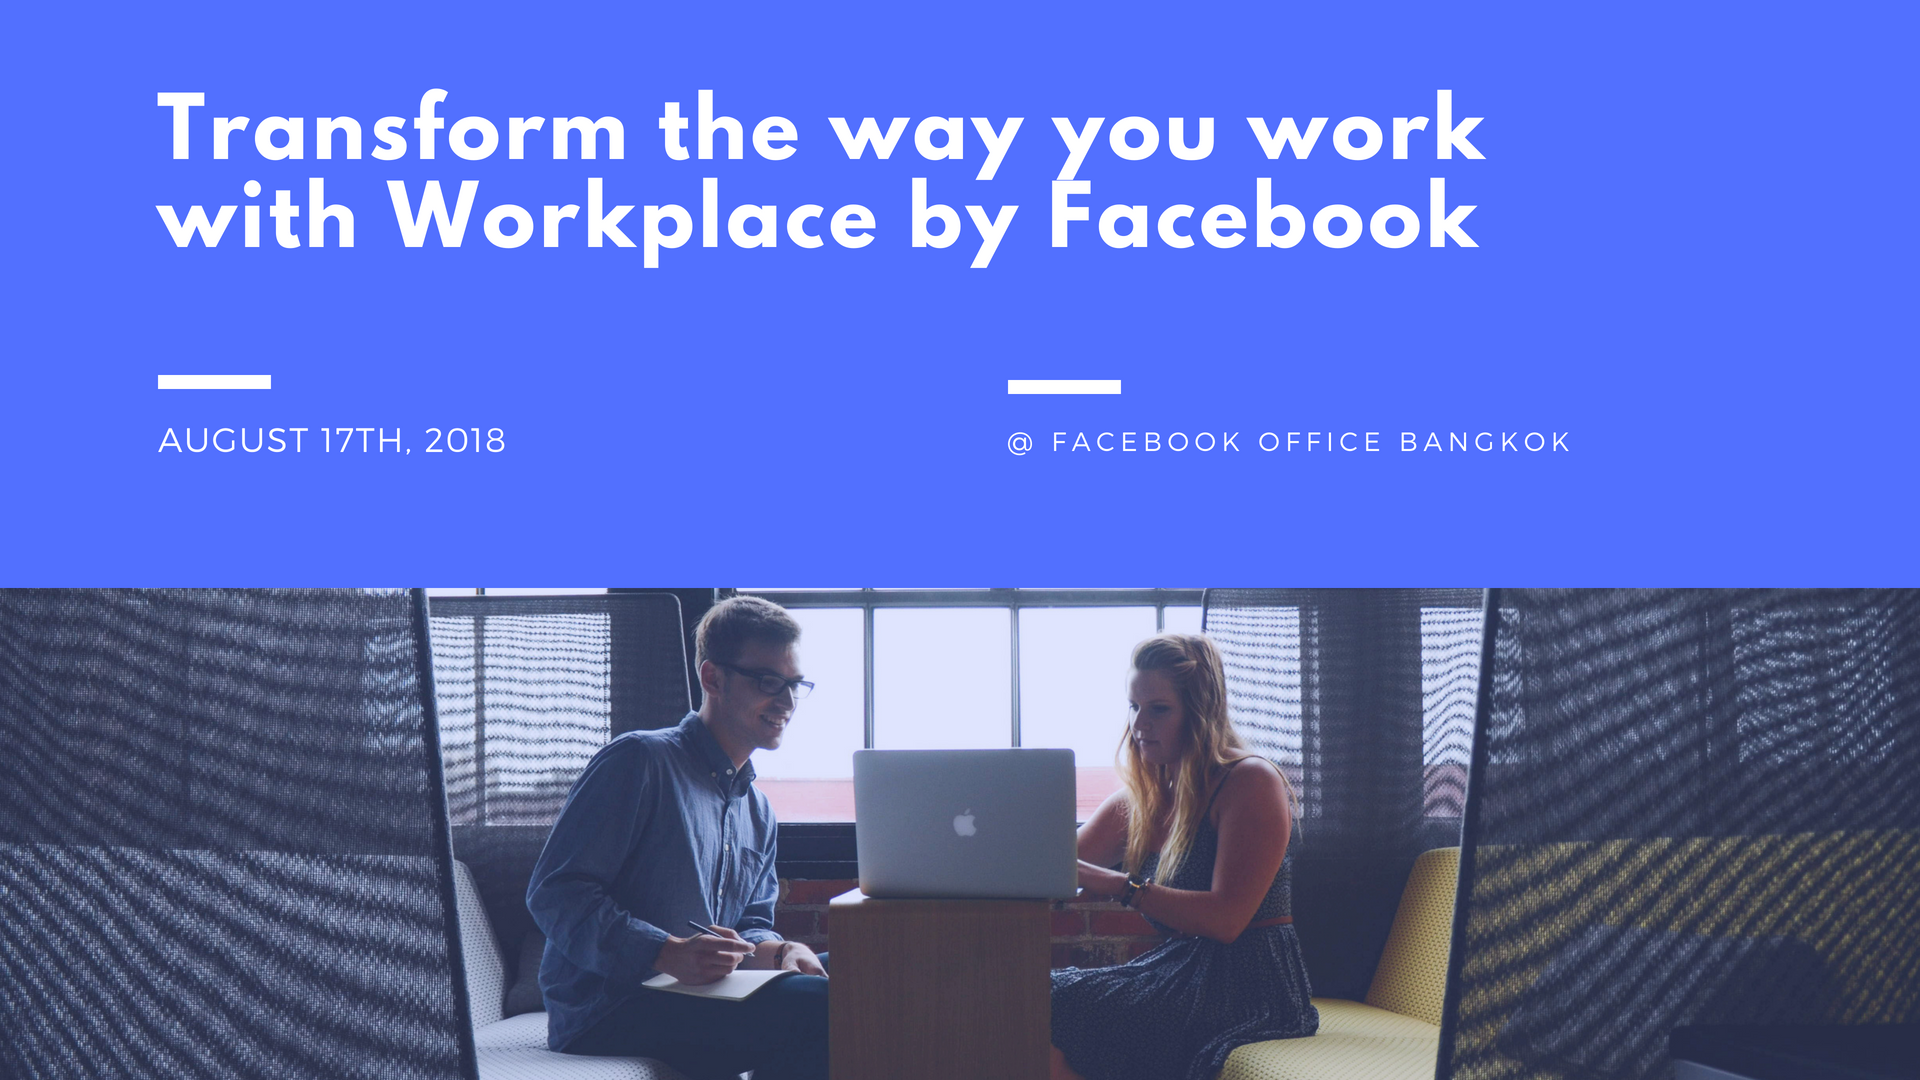 1. New Transform the way you work with Workplace by Facebook.png